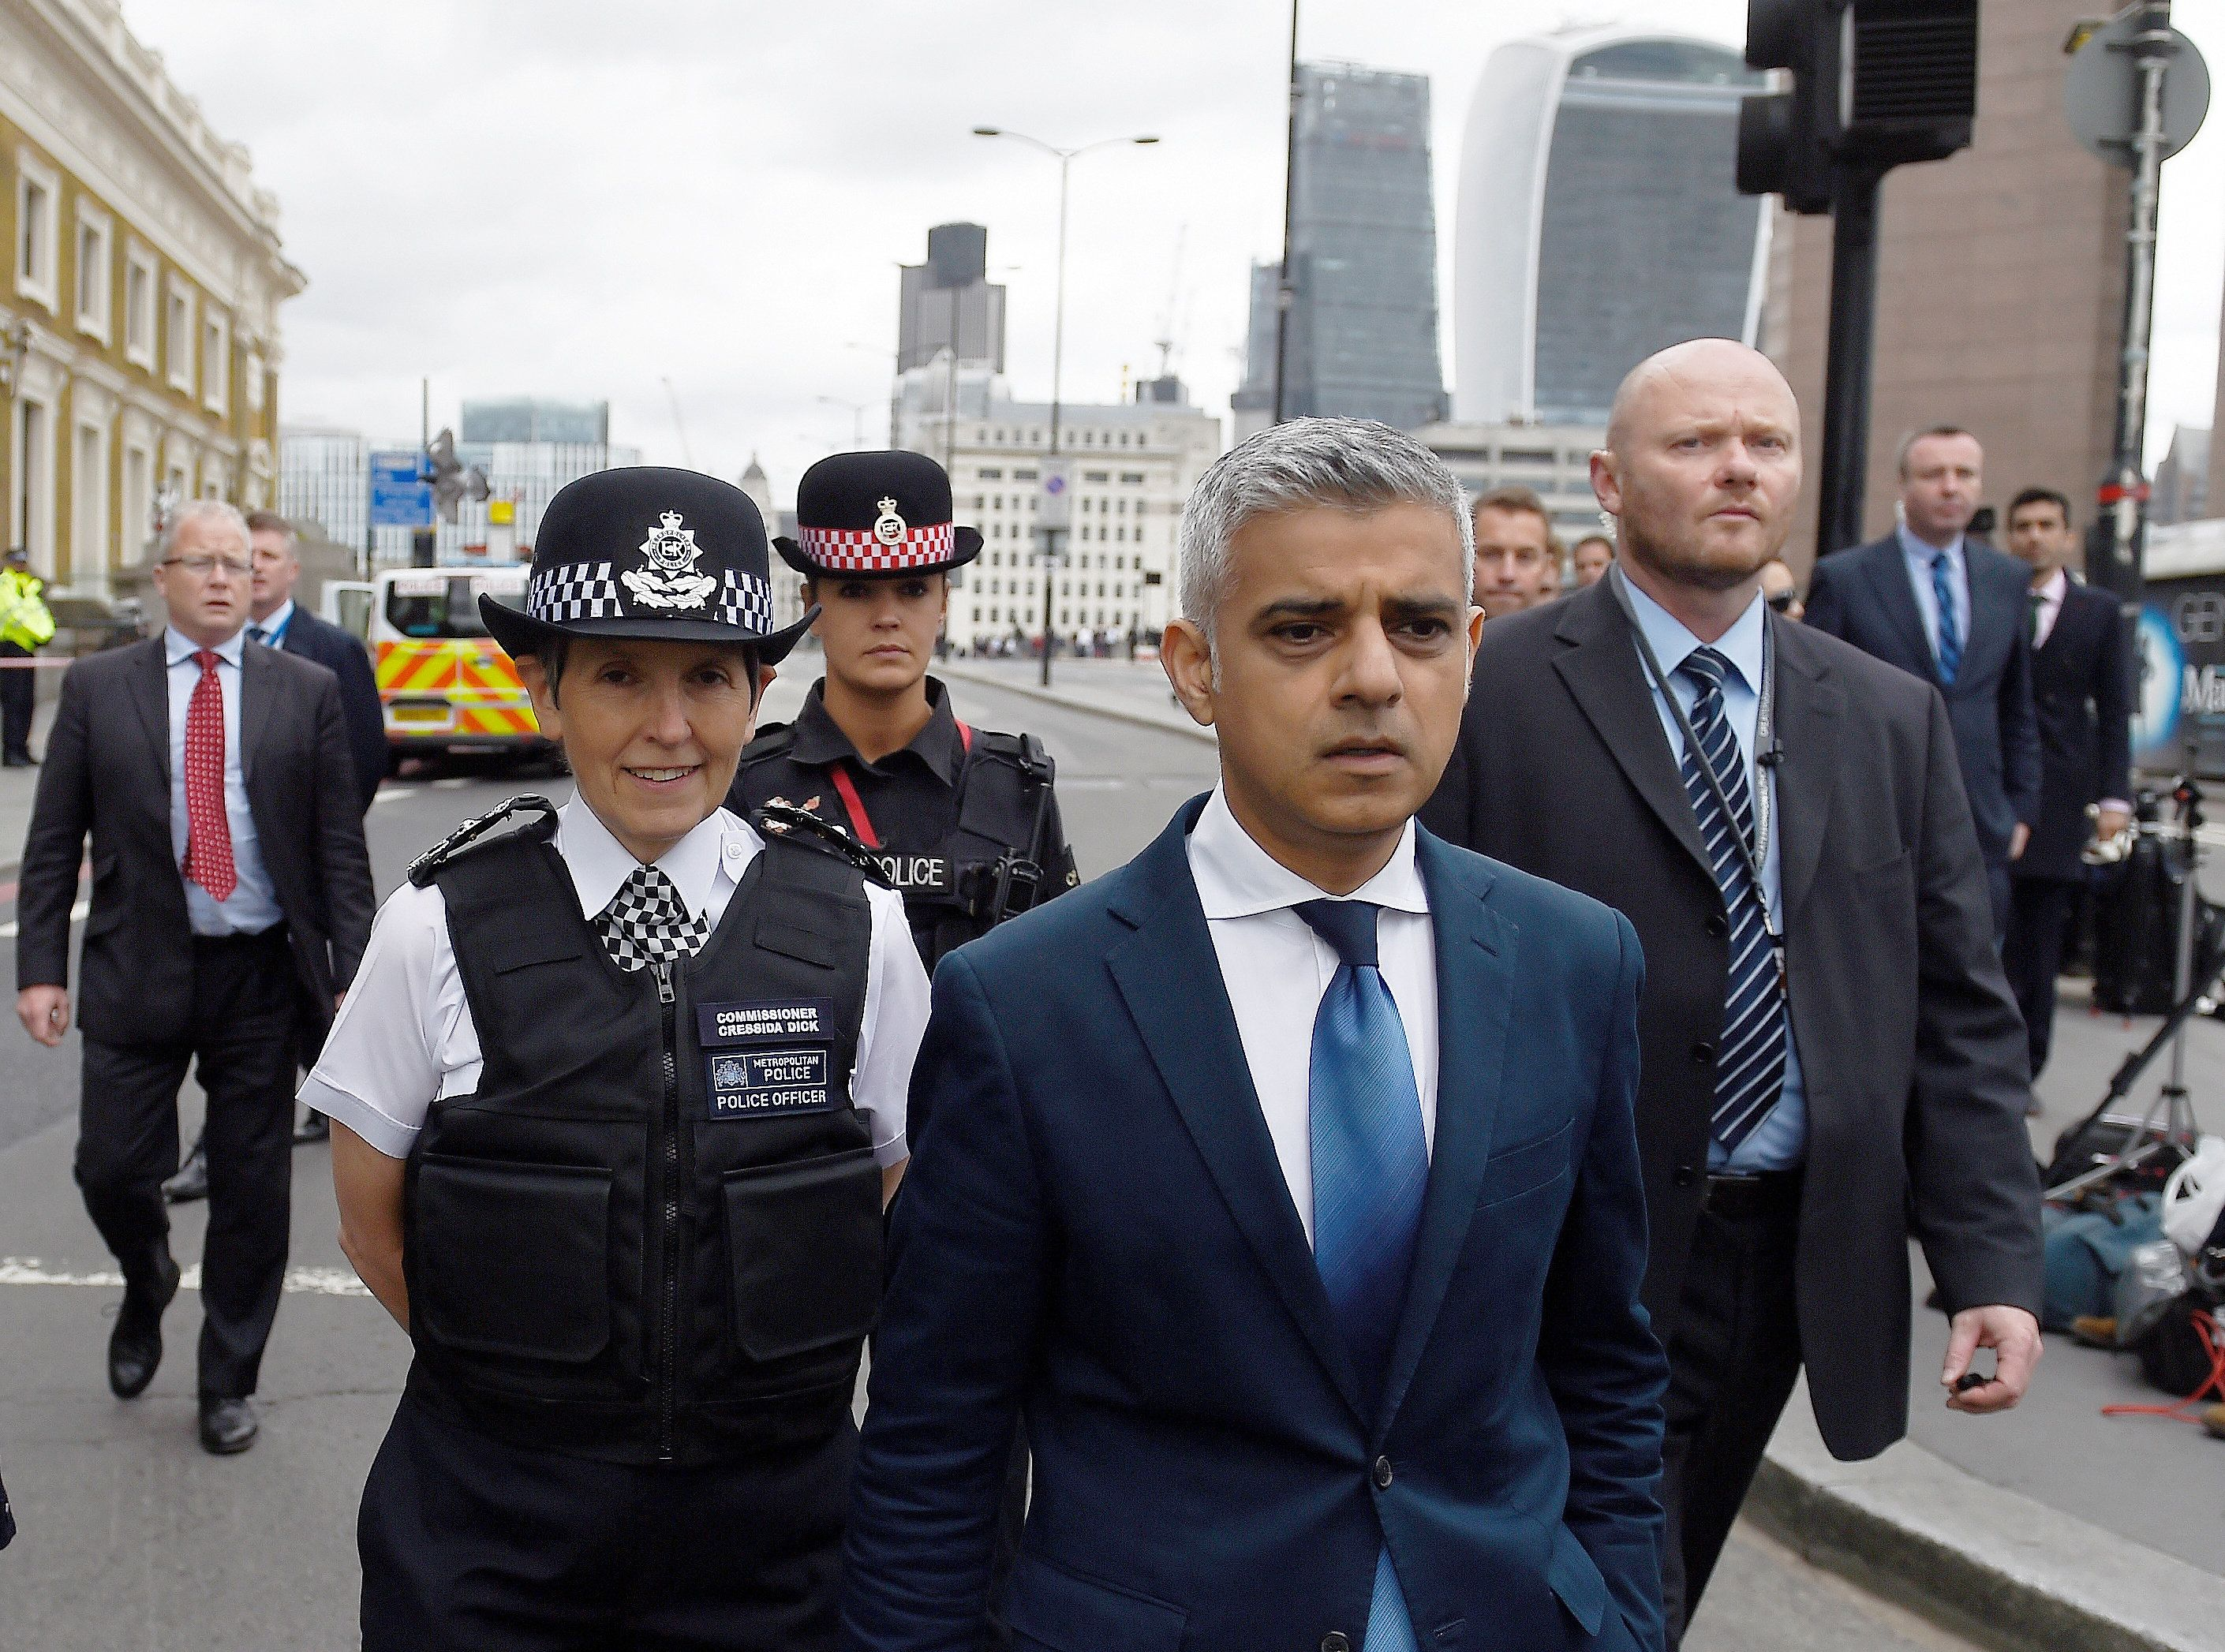 Trump Attacks Sadiq Khan For Doing A 'Bad Job' On Terrorism And Running The